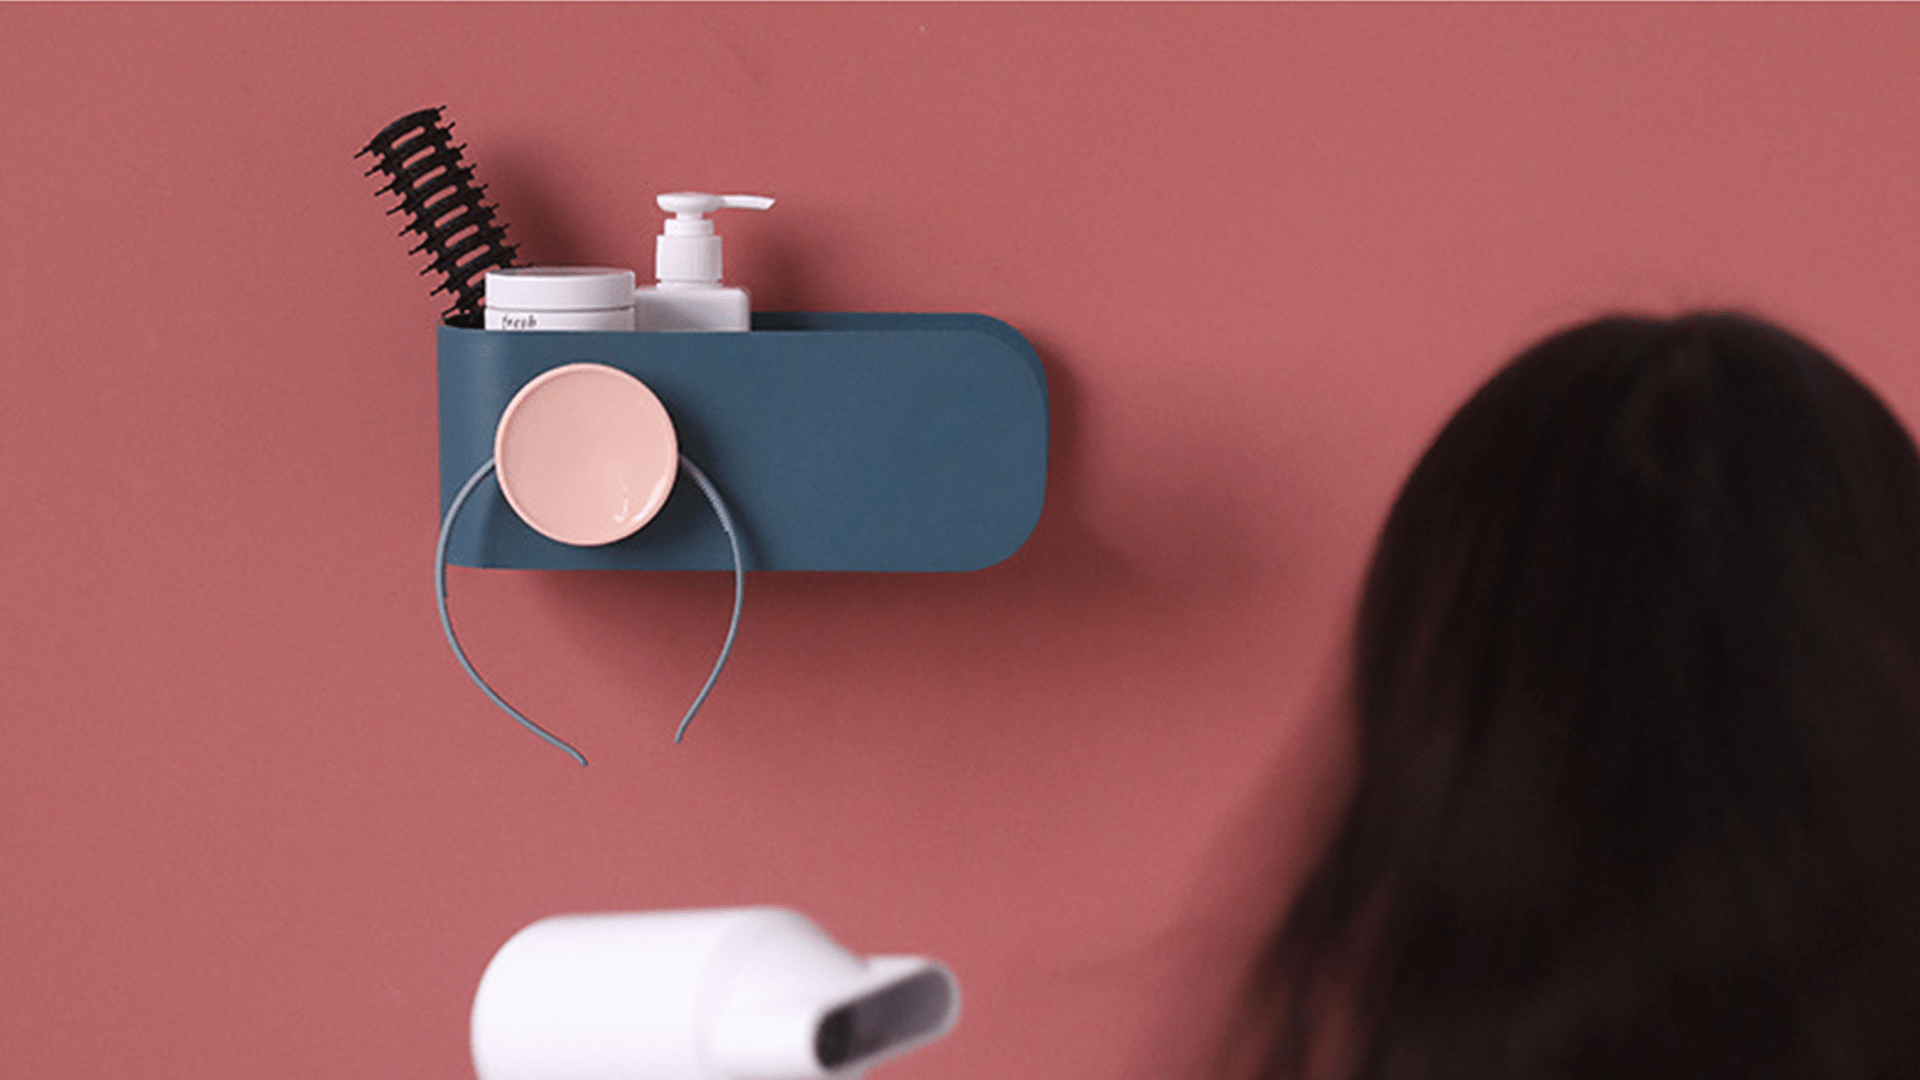 Nil Hair Dryer Holder 6 - Sneapy